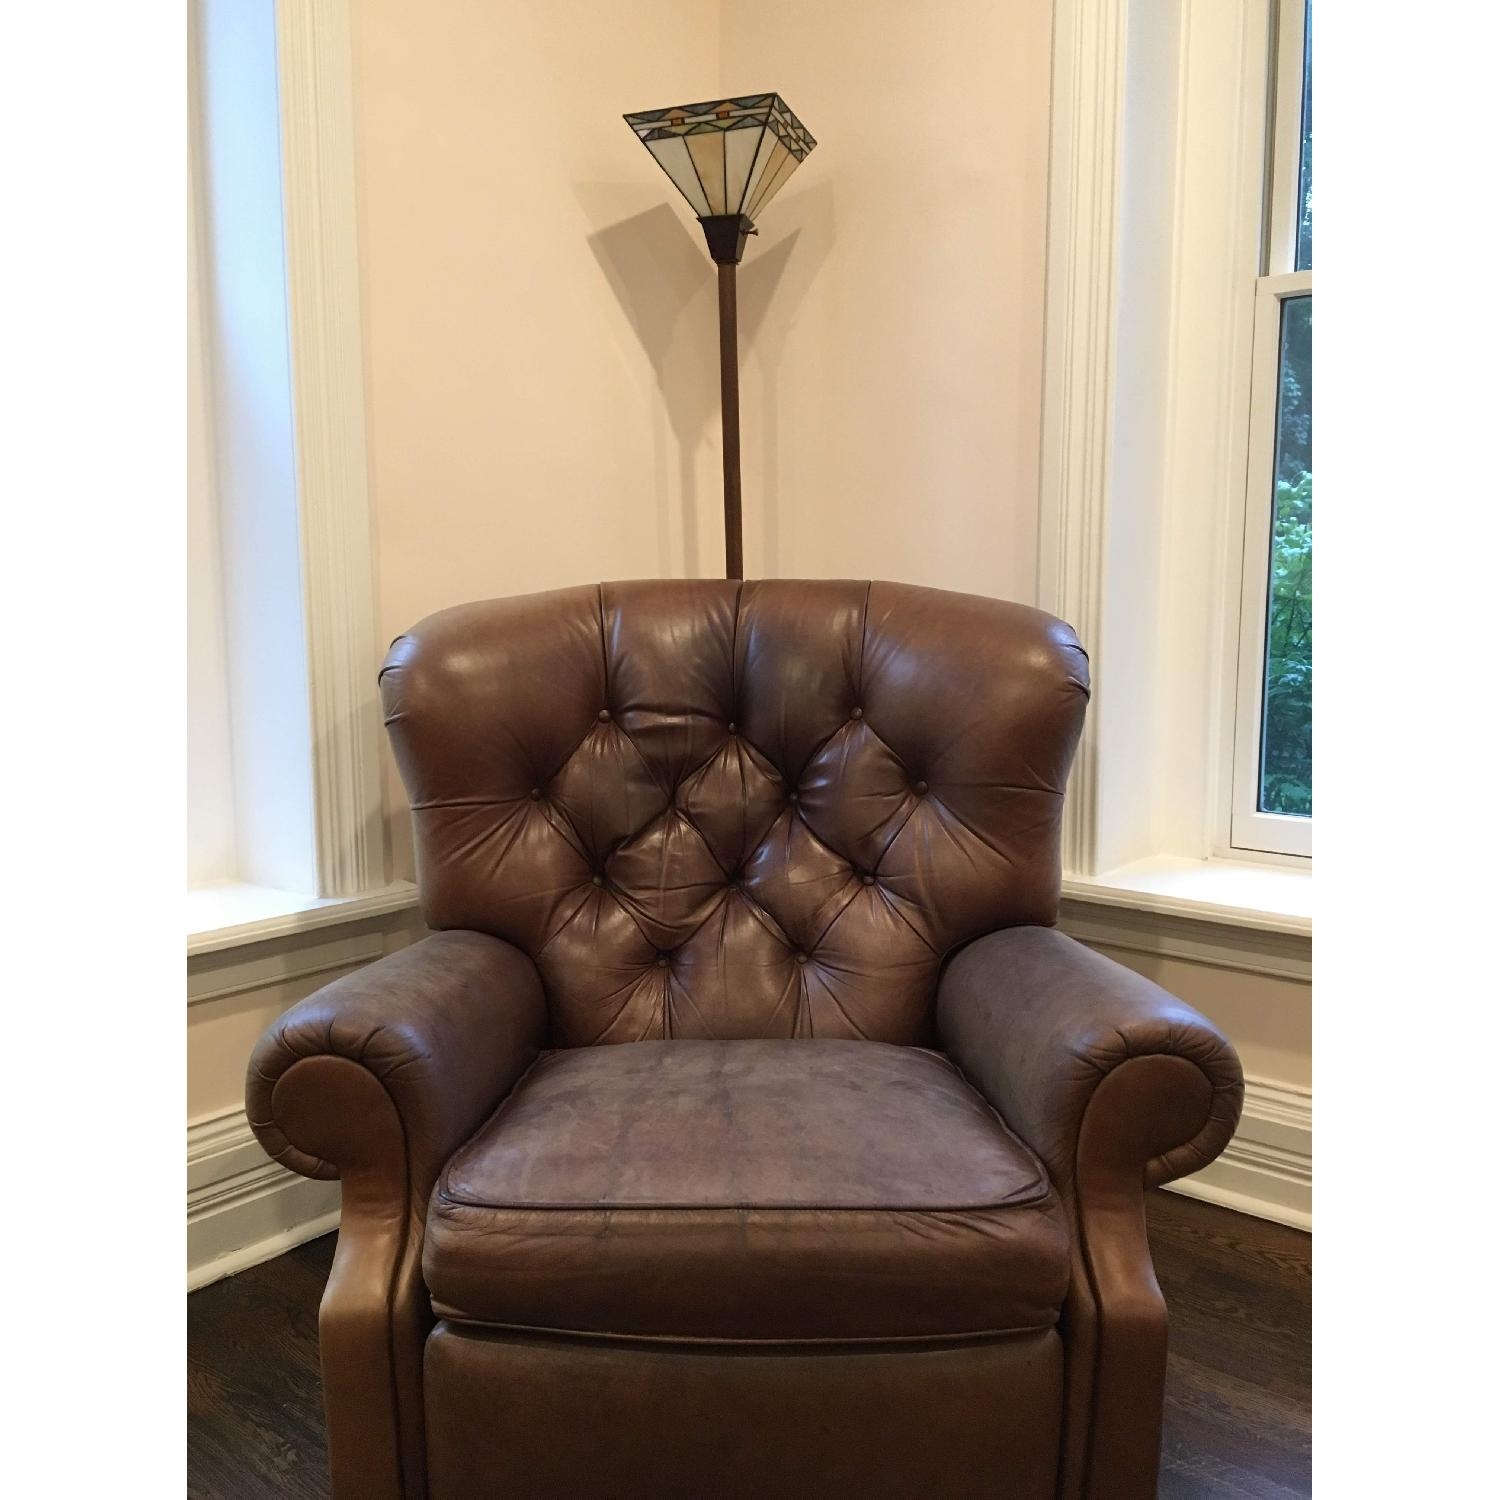 ... Club Furniture Jackson Tufted Leather Recliner Chair 0 ...